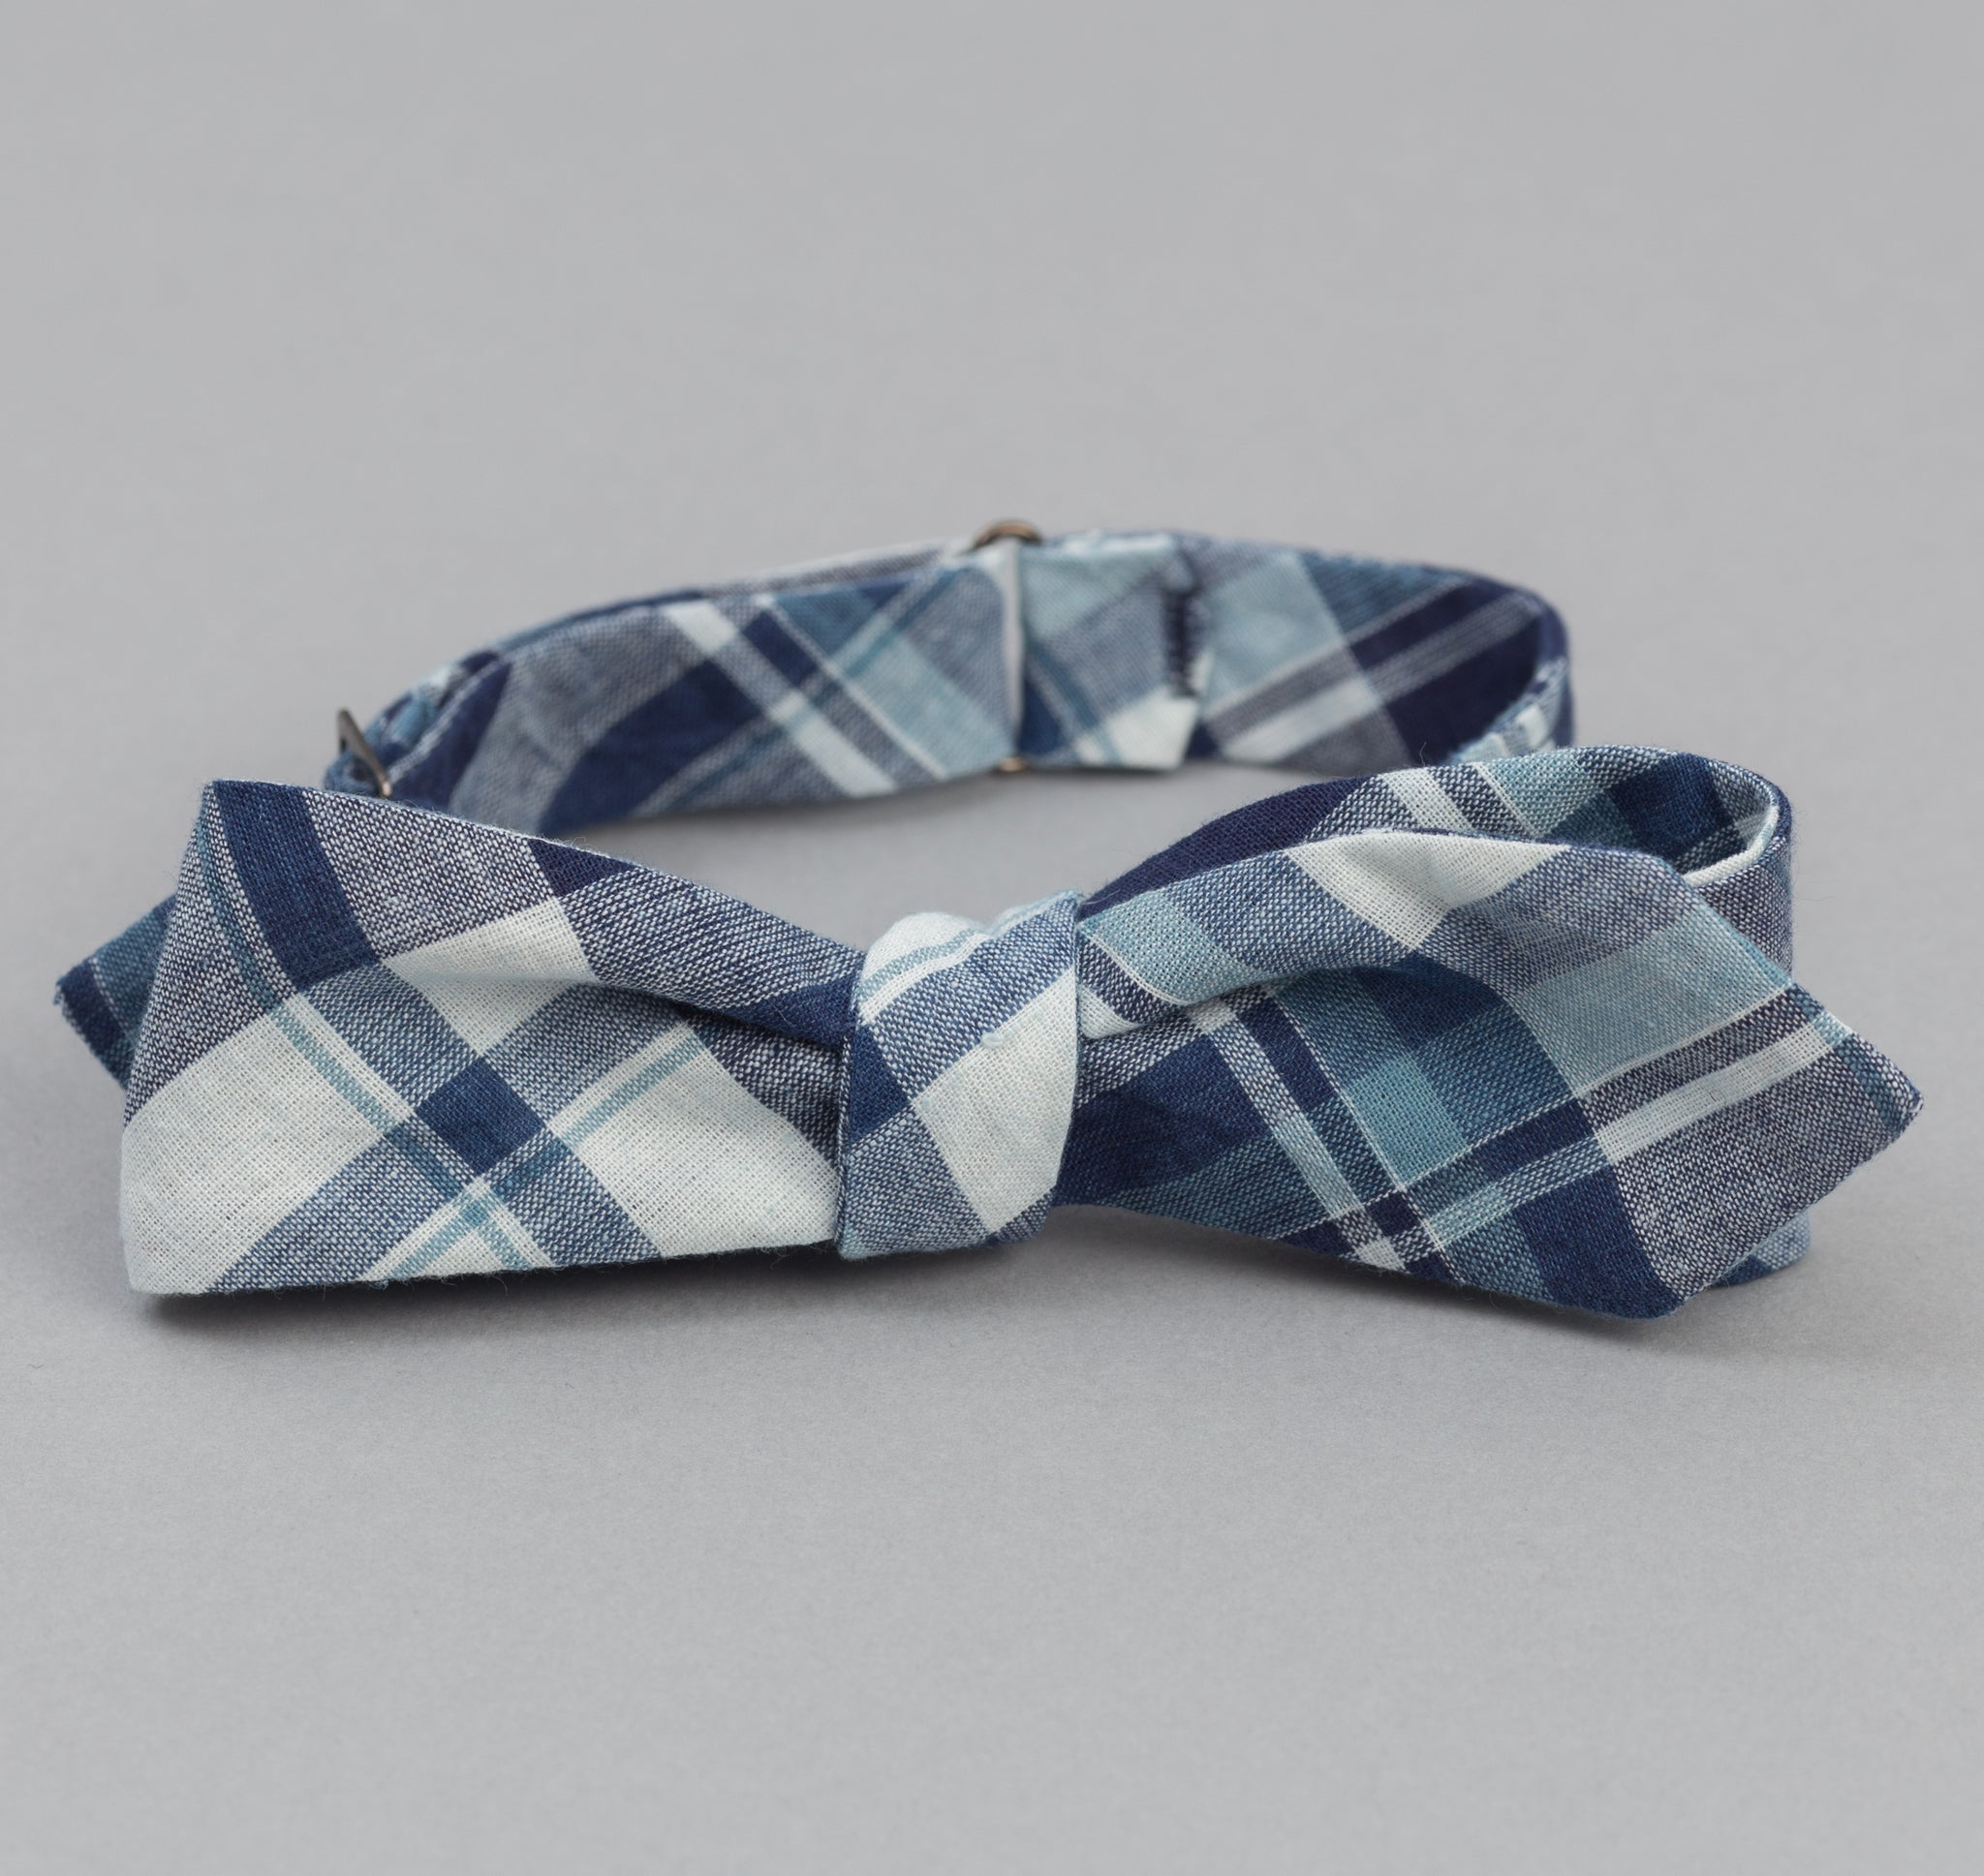 The Hill-Side - Indigo Madras Large Check Bow Tie, Natural Base - BT1-333 - image 1